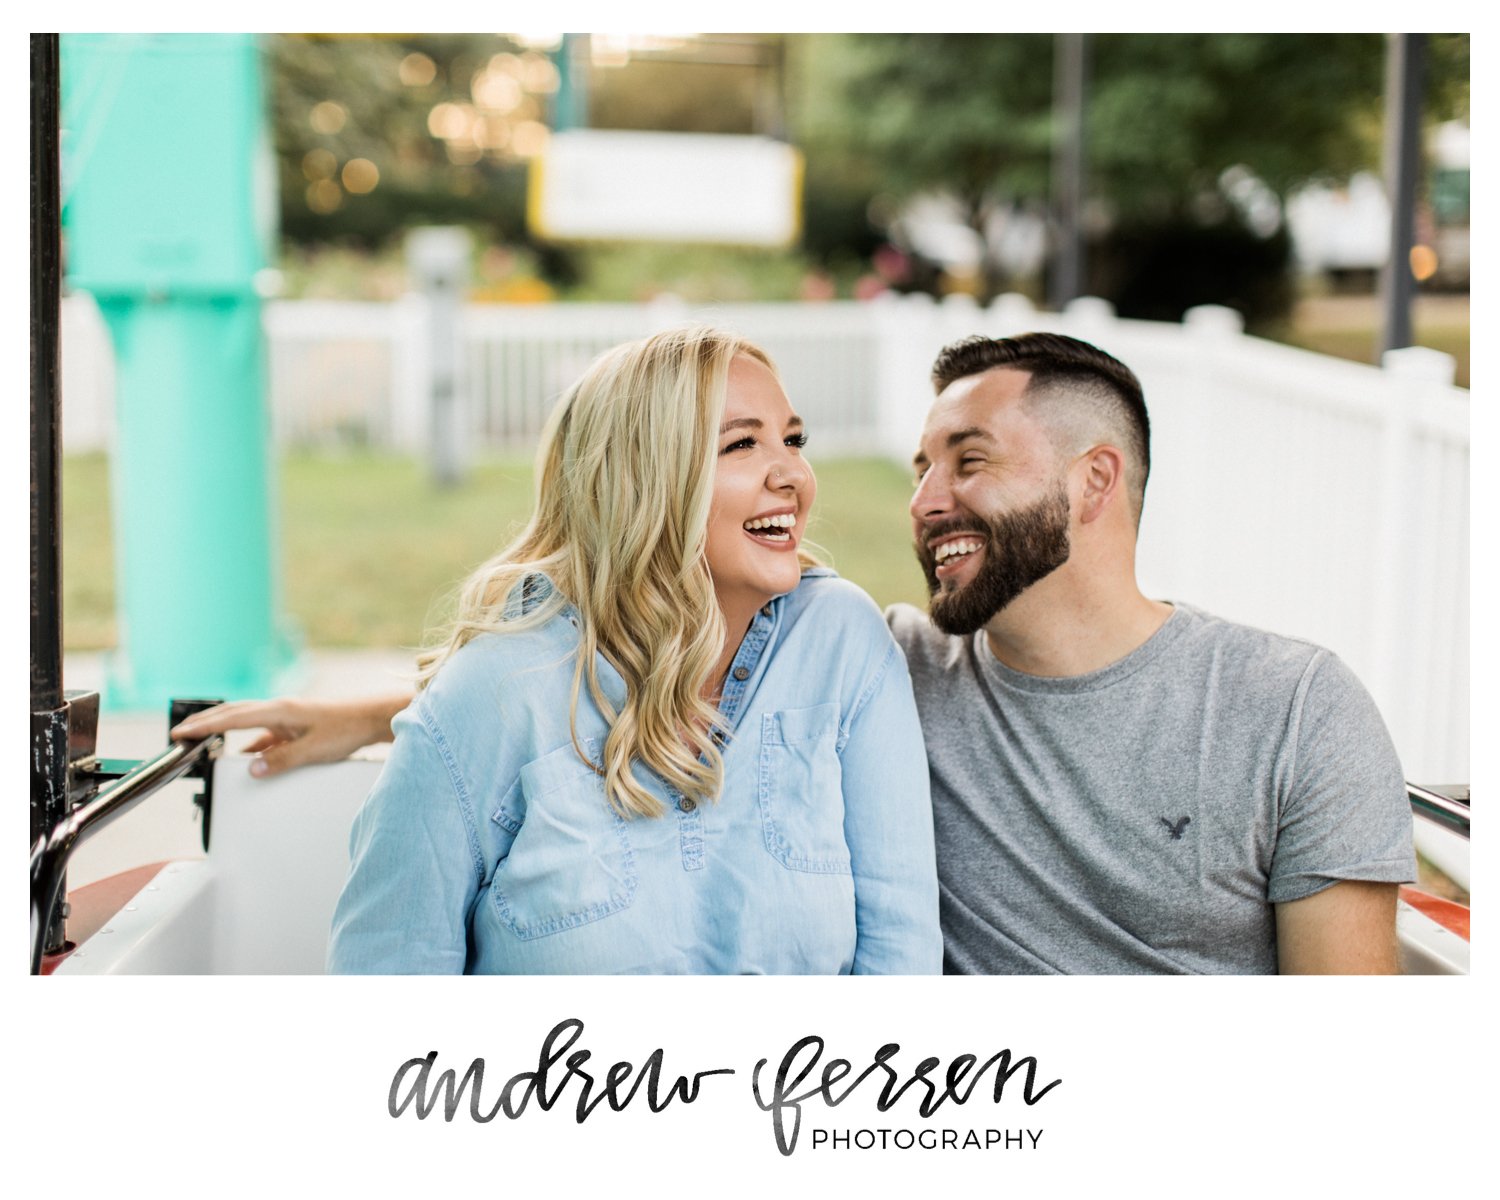 13 Iowa State Fairgrounds Engagement Session Iowa Wedding Photographer Andrew Ferren Photography Pinterest.jpg